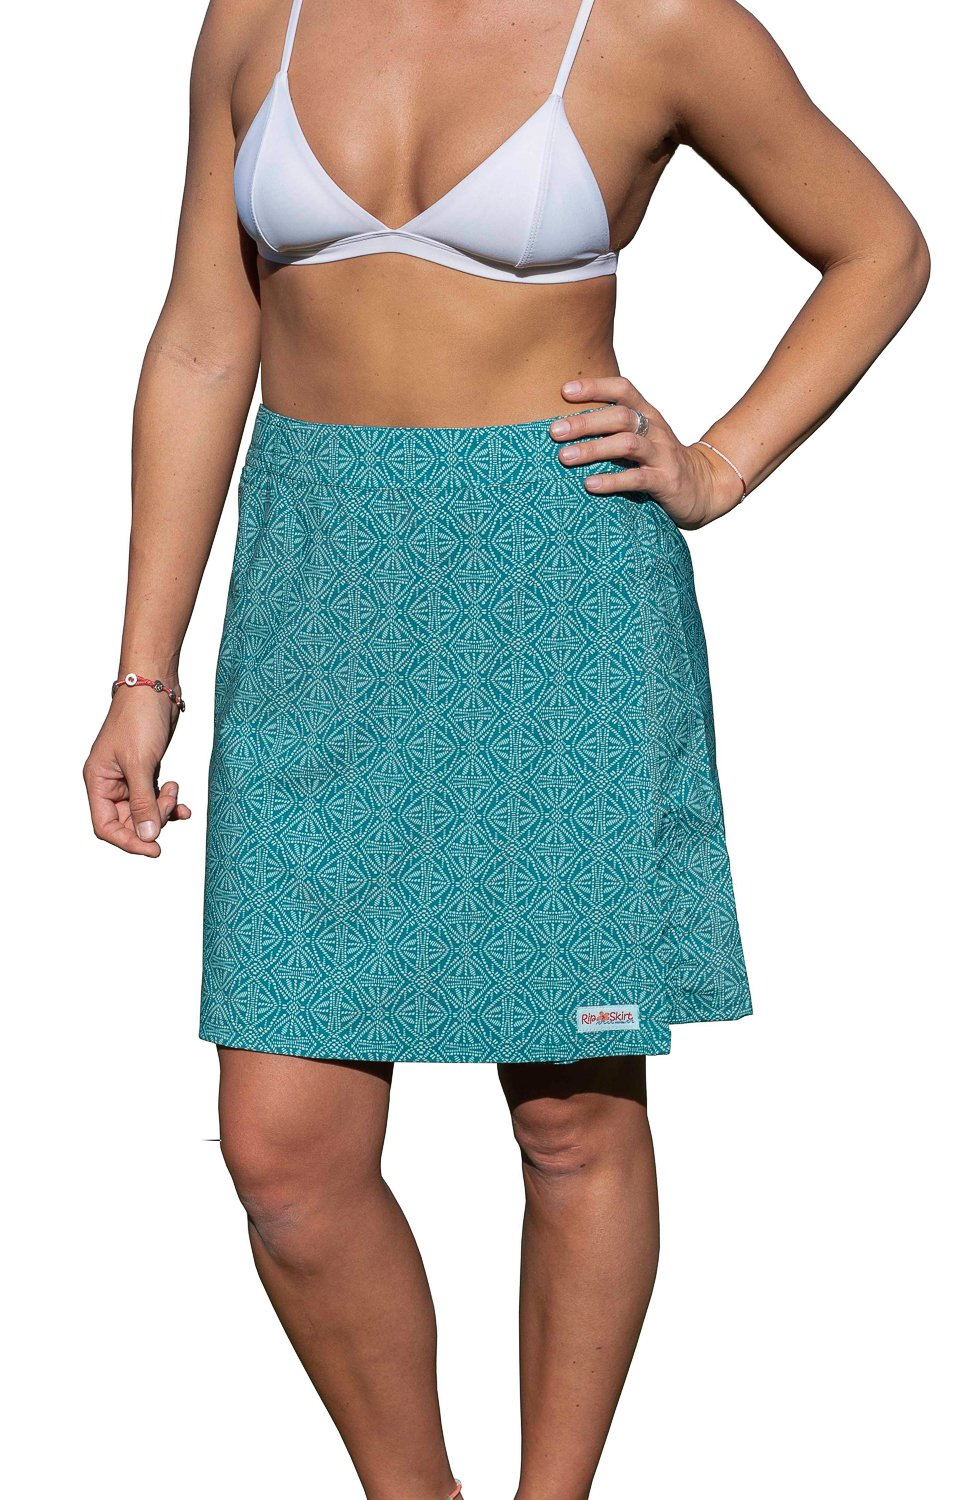 RipSkirt Hawaii - Length 2 - Quick Wrap Cover-up That Multitasks as The Perfect Travel/Summer Skirt